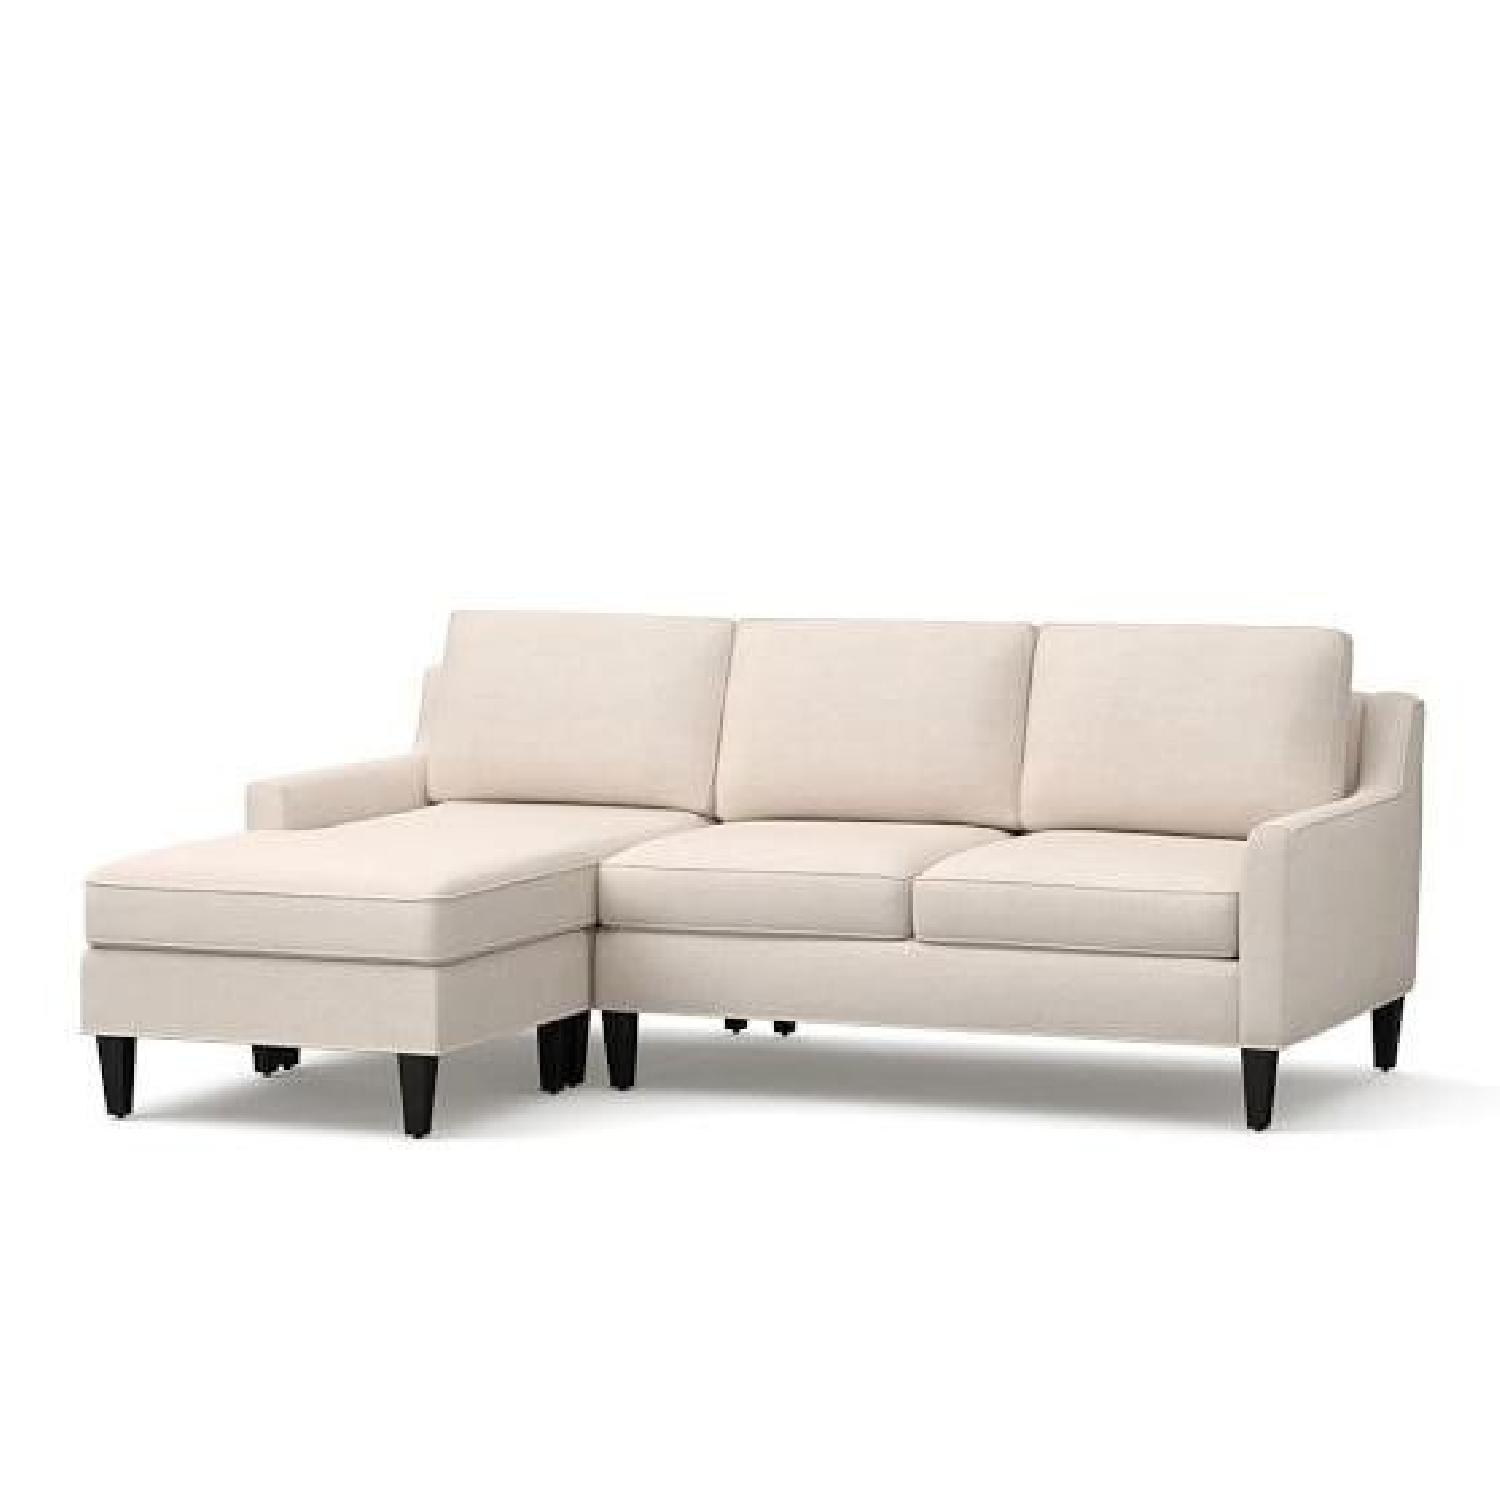 Pottery Barn Beverly Sectional Sofa w/ Chaise